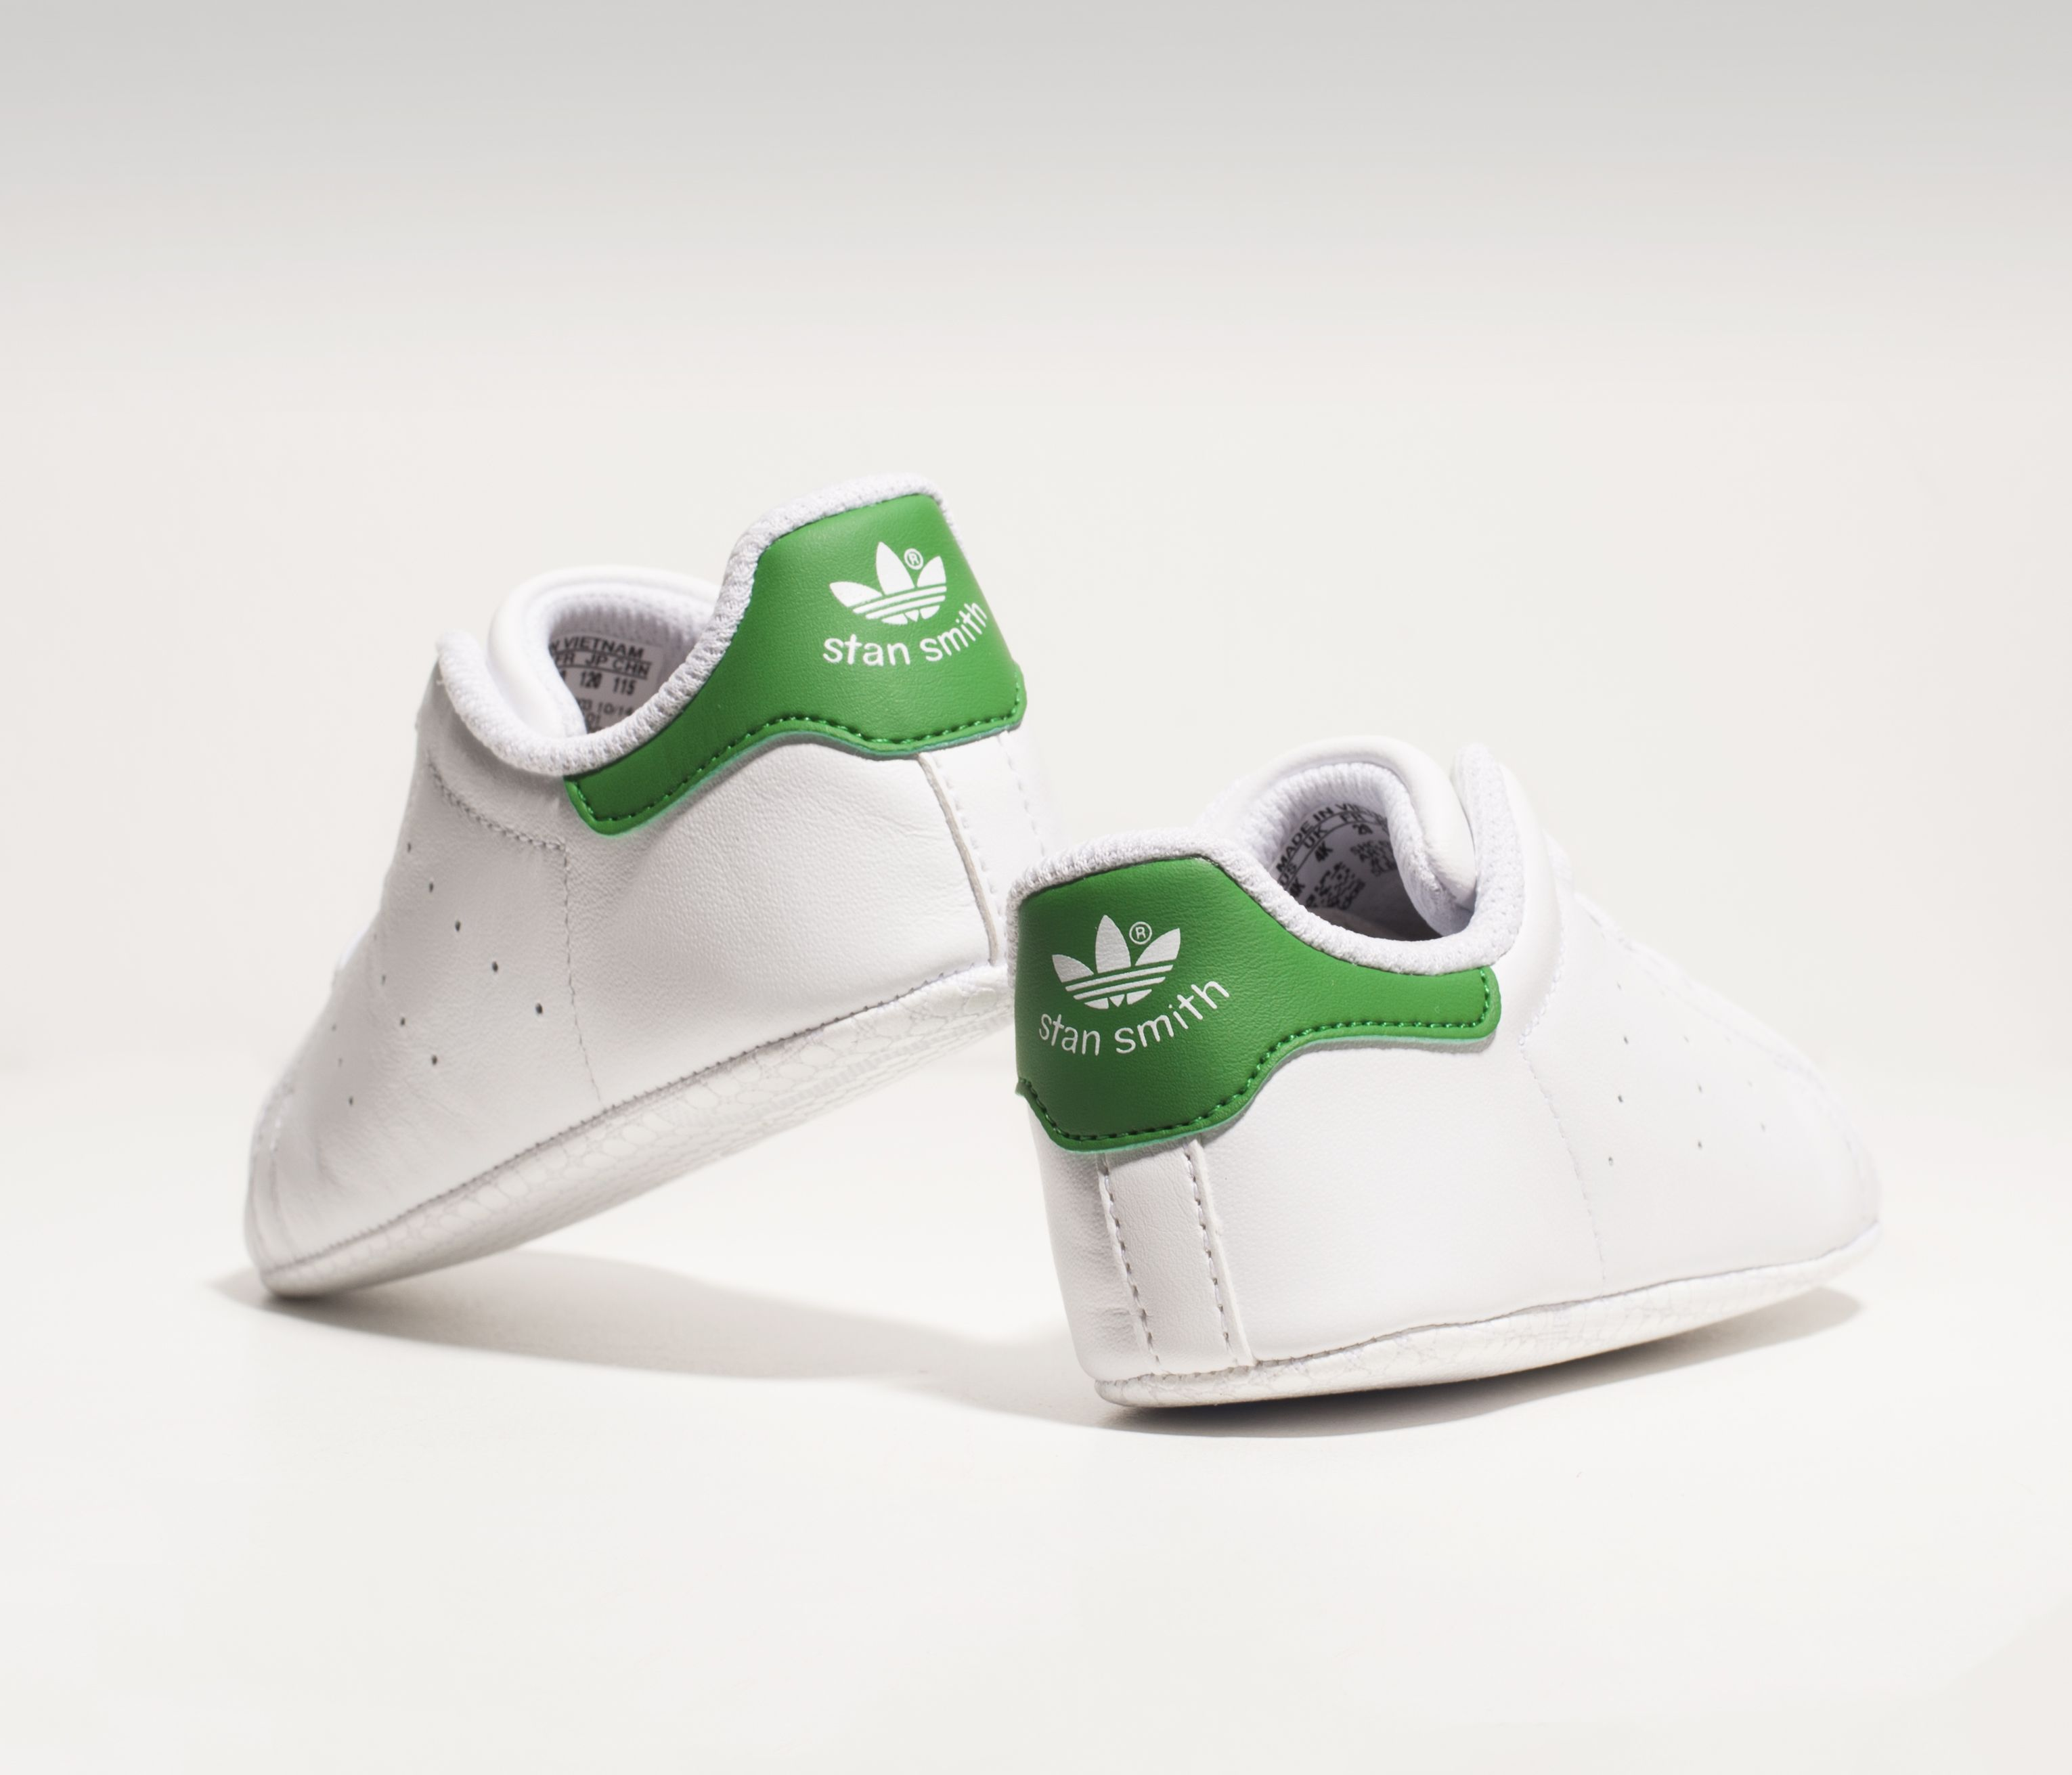 factory authentic b6961 1316f Timeless Adidas Stan Smiths can now be a life long staple. From crib and up.